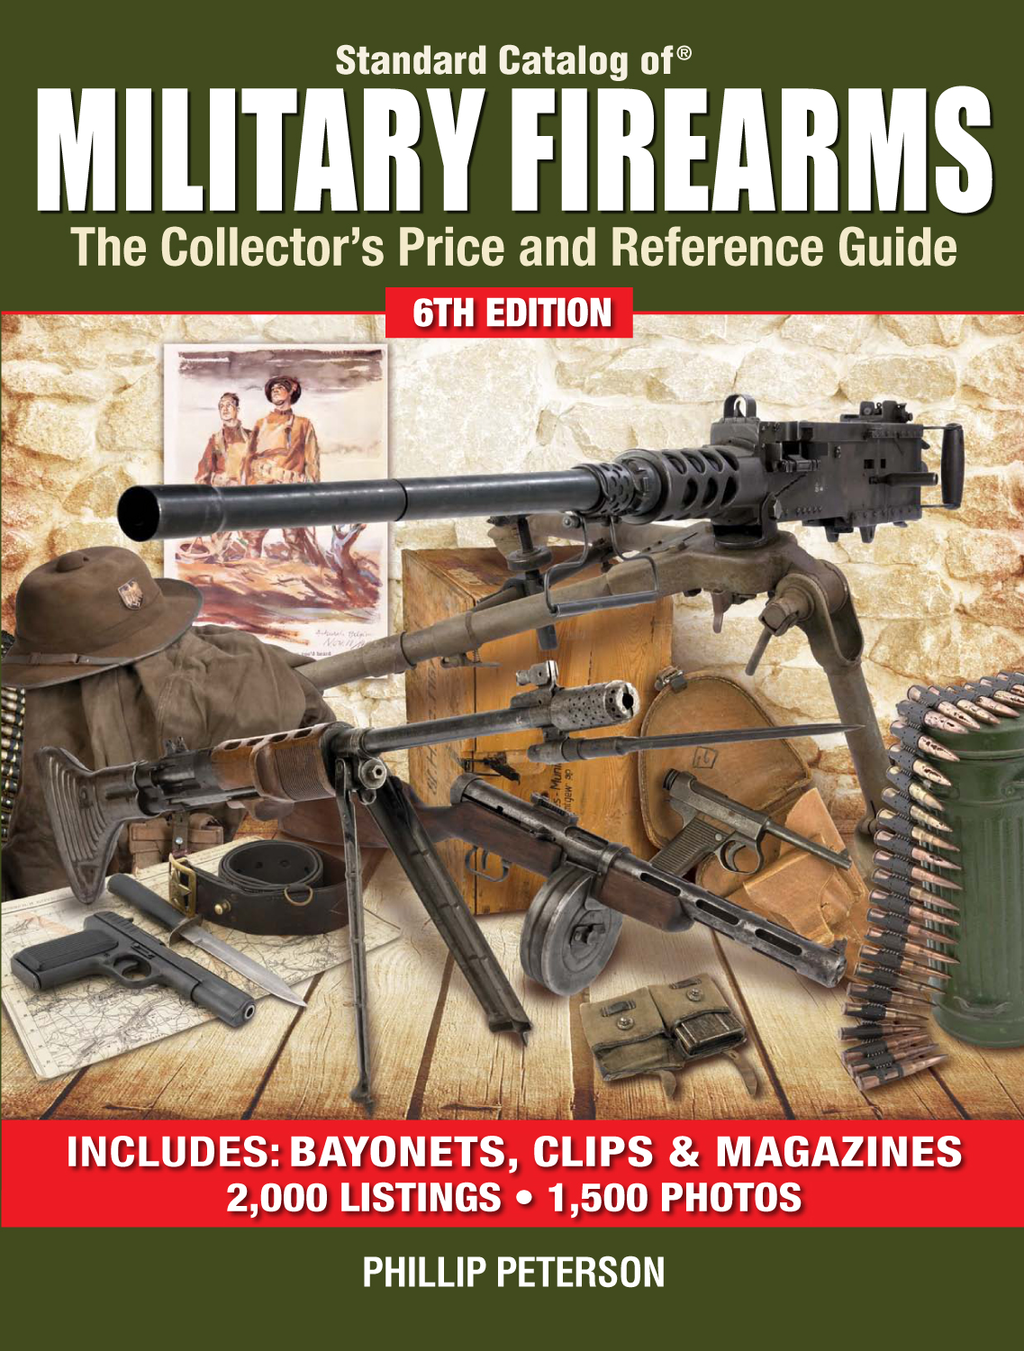 Standard Catalog of Military Firearms The Collector's Price and Reference Guide